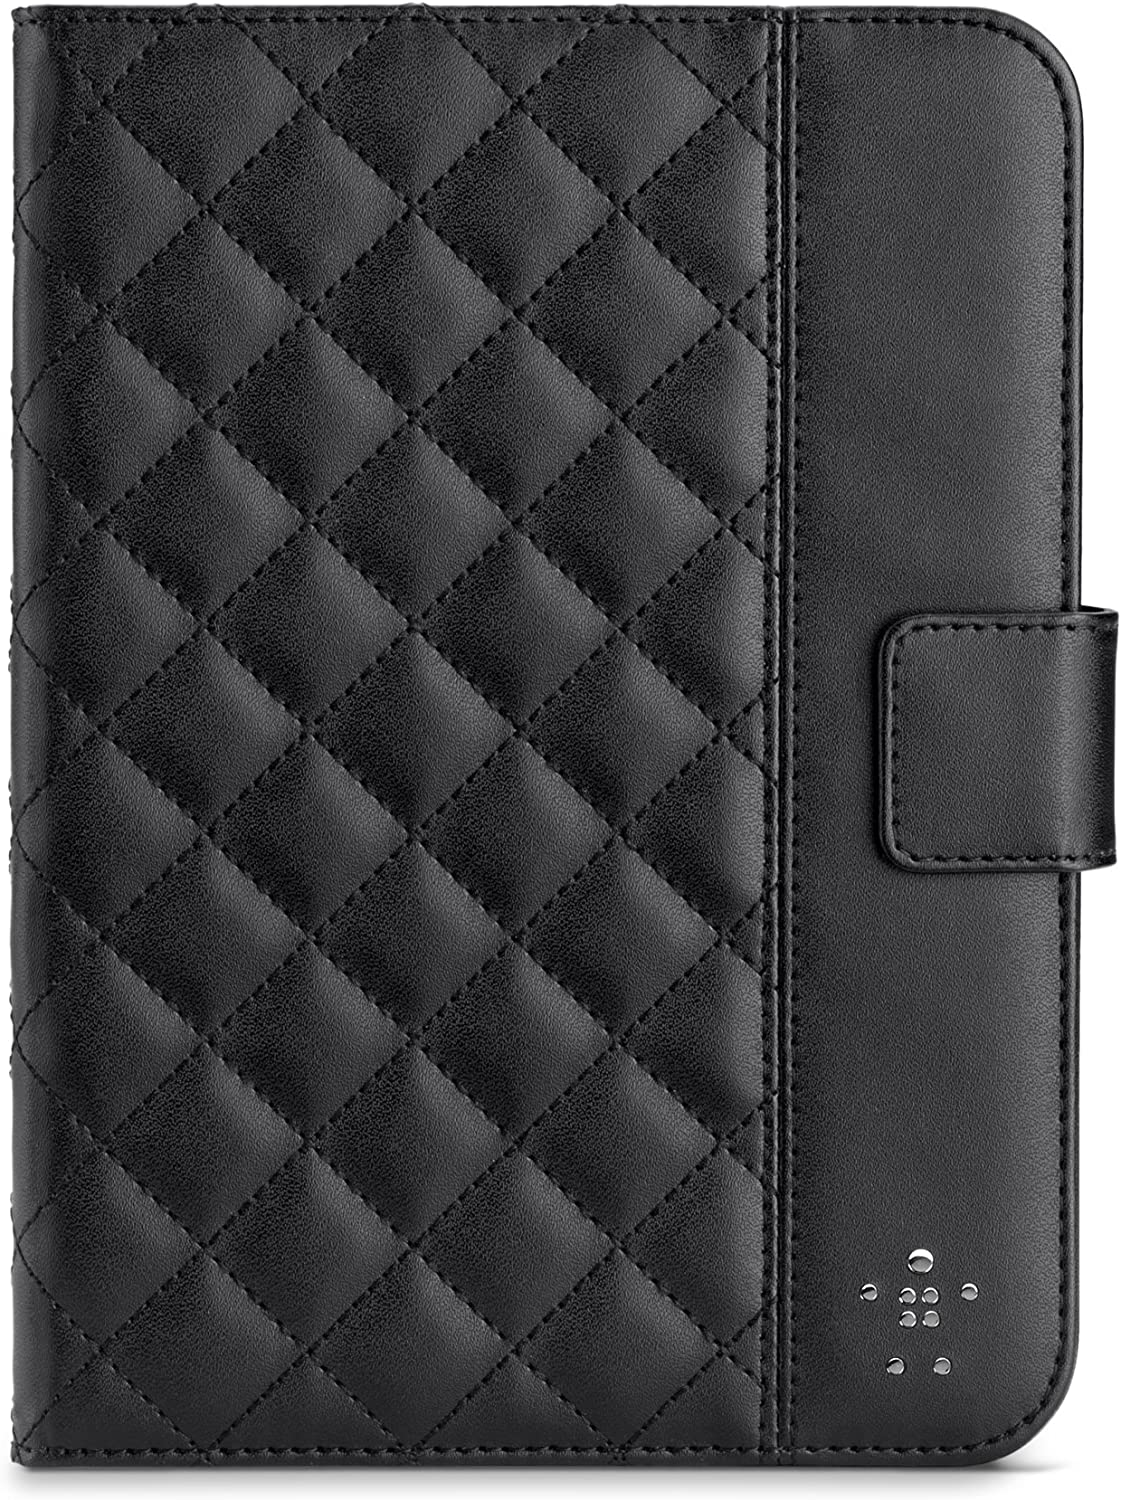 Belkin Quilted Cover with Stand for iPad Mini 3, iPad Mini 2 with Retina Display and iPad Mini (Black)